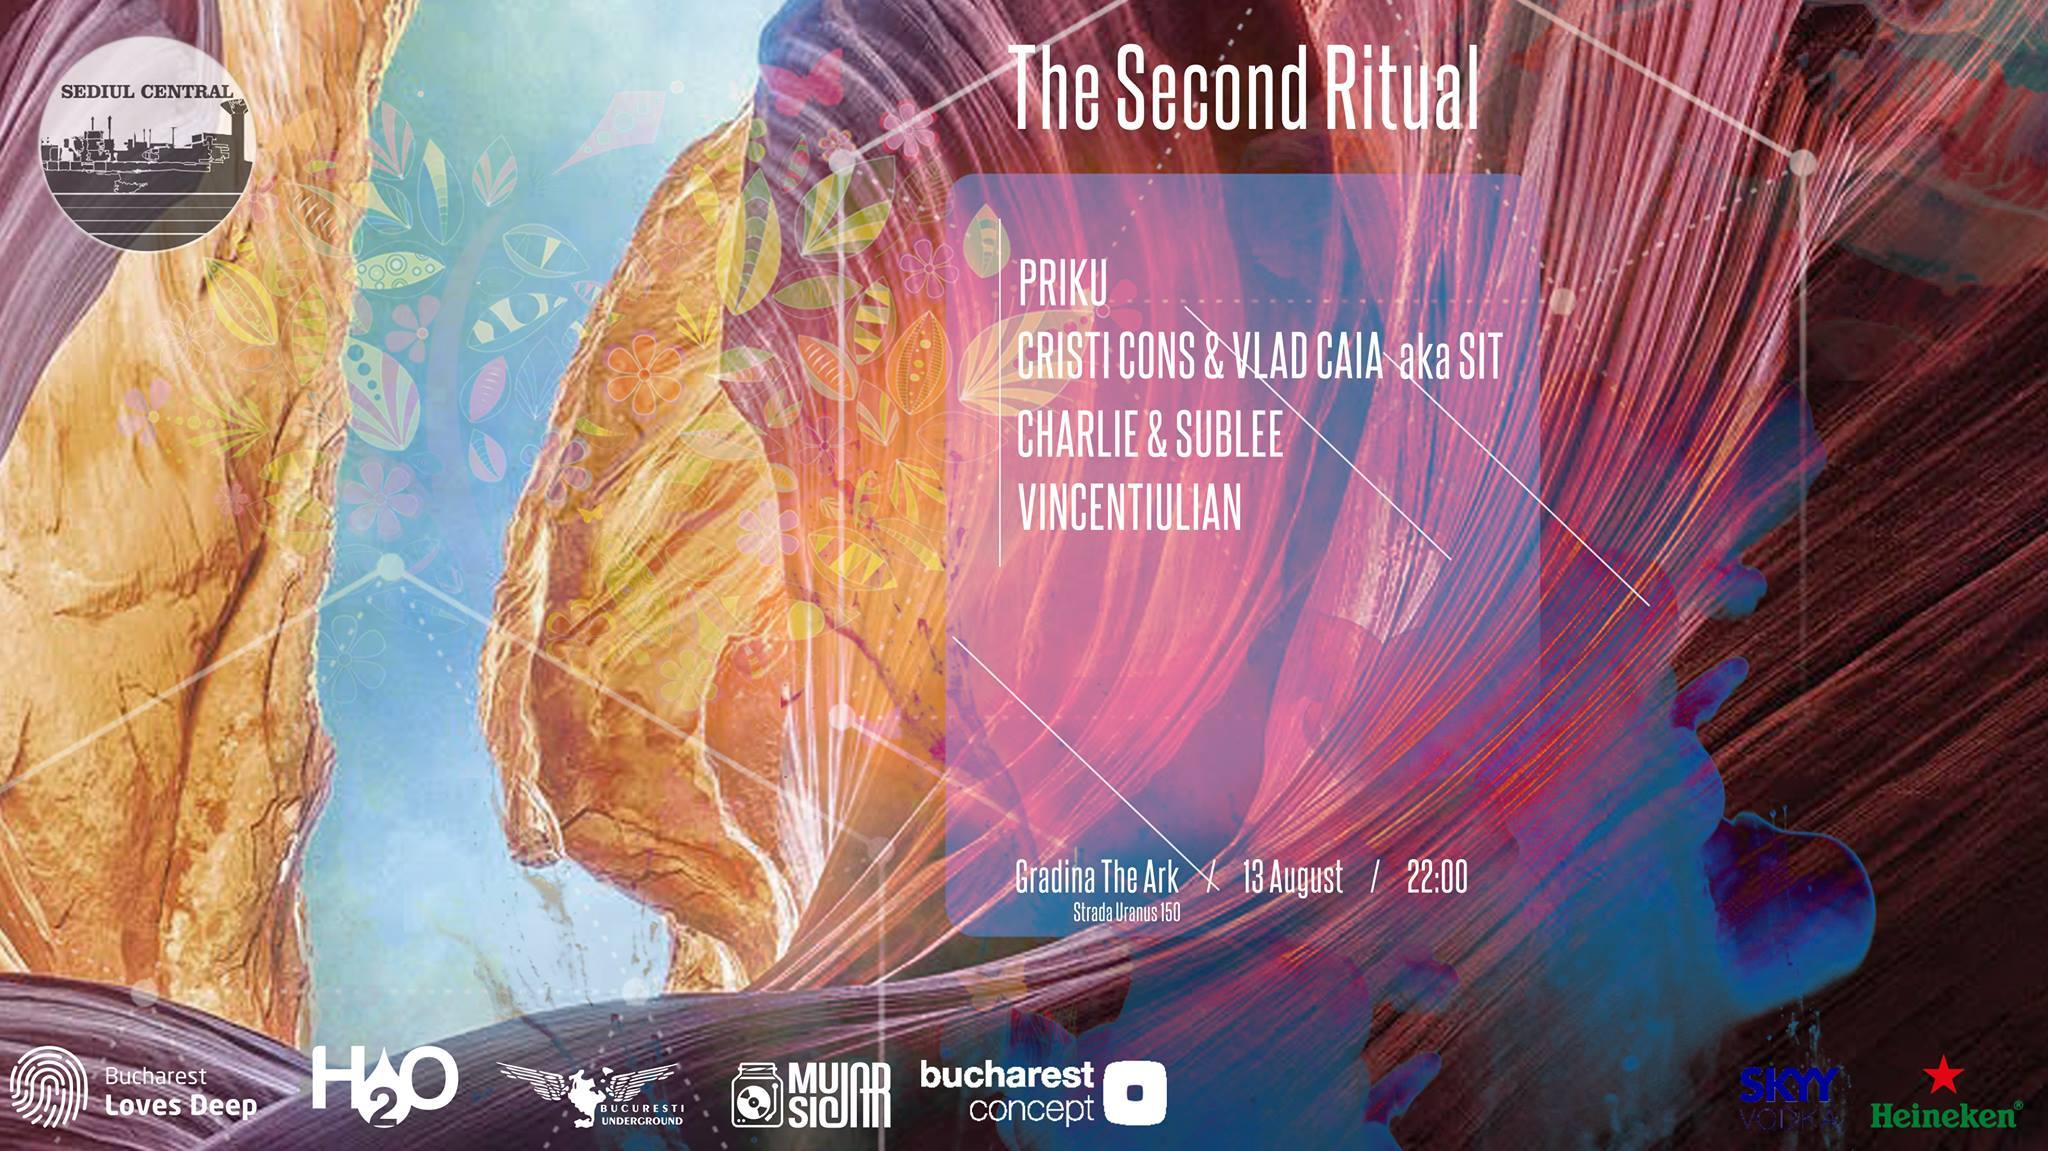 The Second Ritual: Priku, SIT, Charlie & Sublee, Vincentiulian @ Grădina The Ark